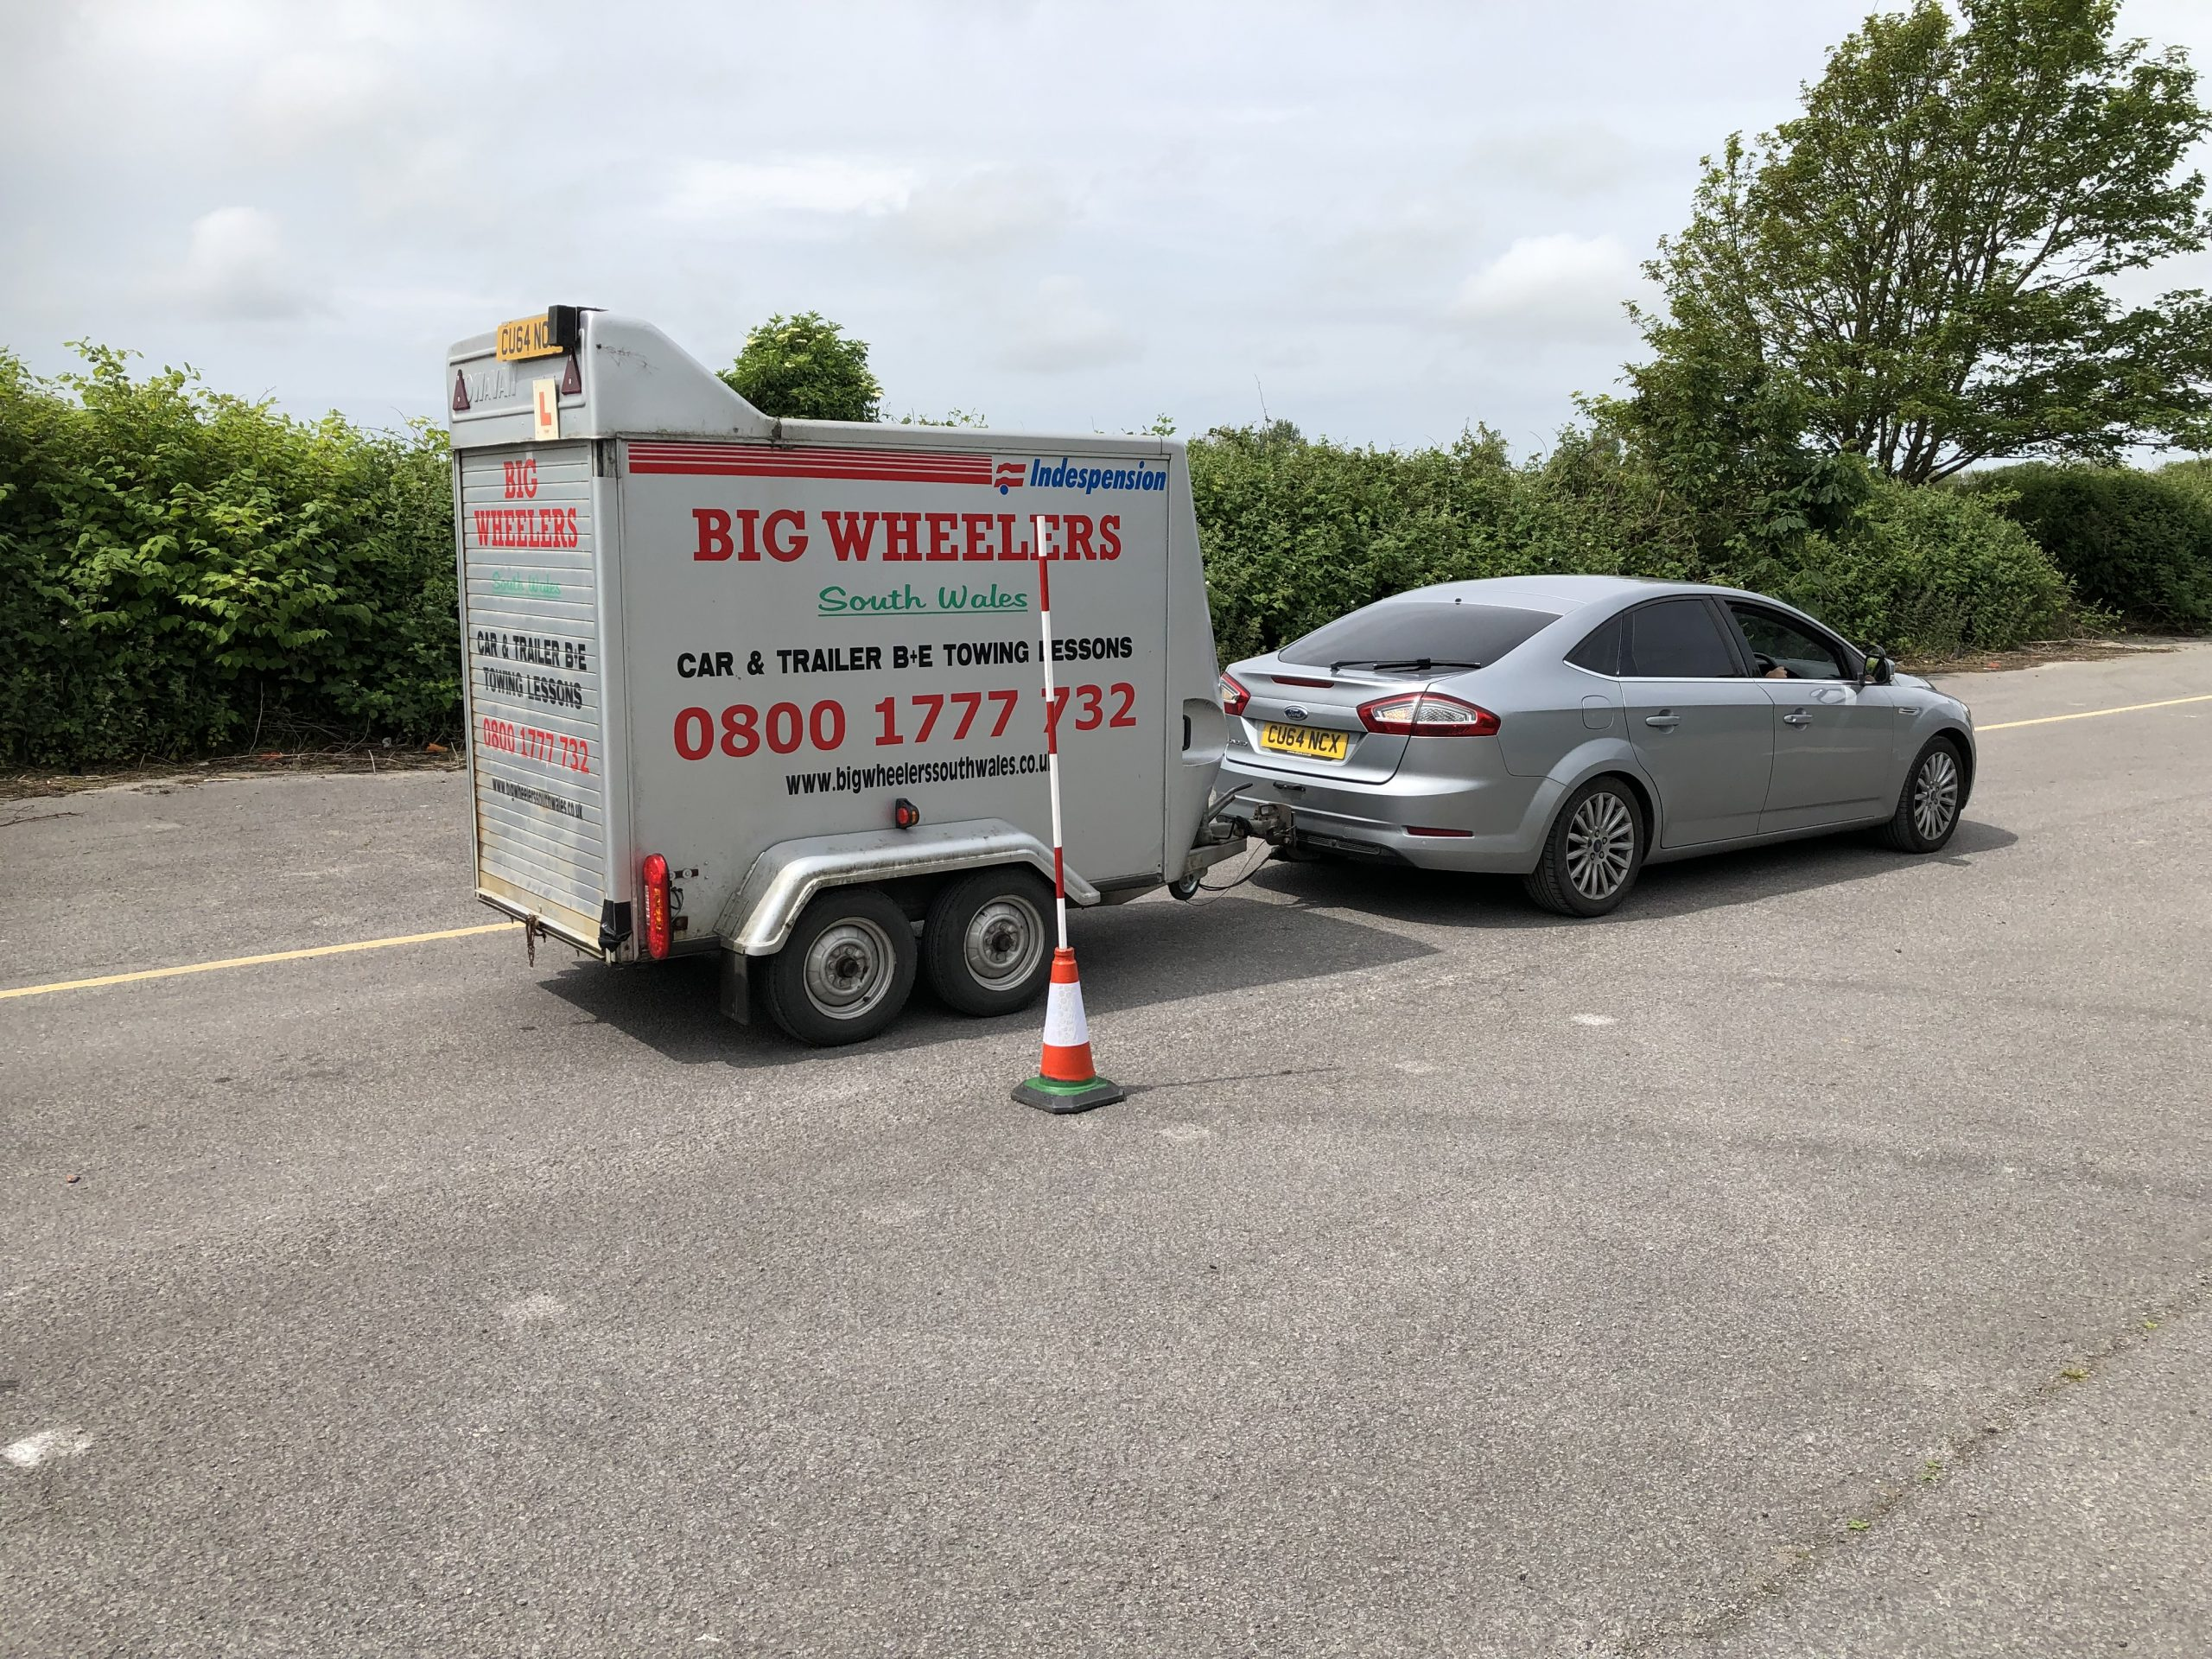 One Day B+E Trailer Training (Using own vehicle)